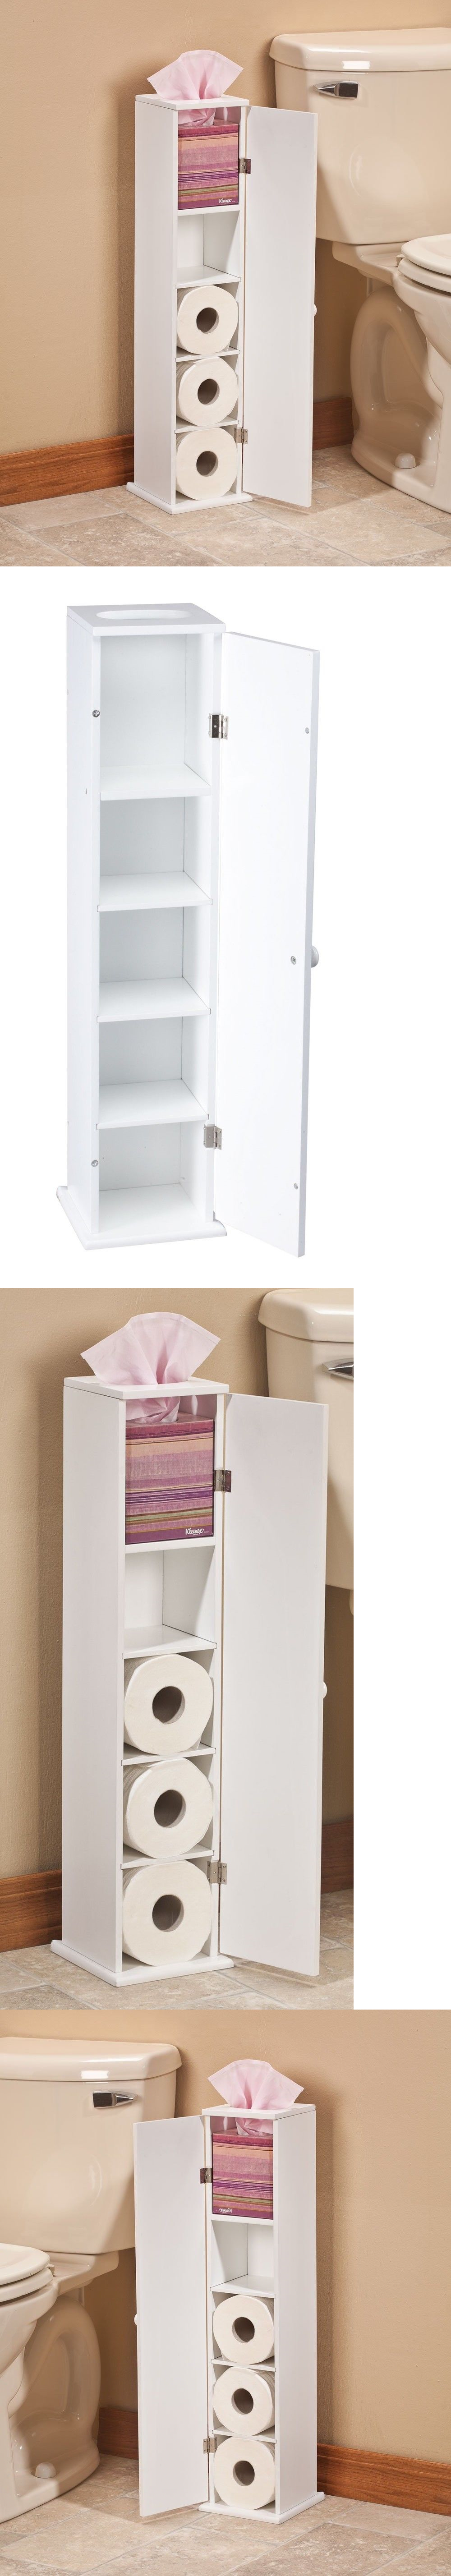 Covered Toilet Paper Storage Toilet Paper Storage And Covers 177124 Bathroom Toilet Paper